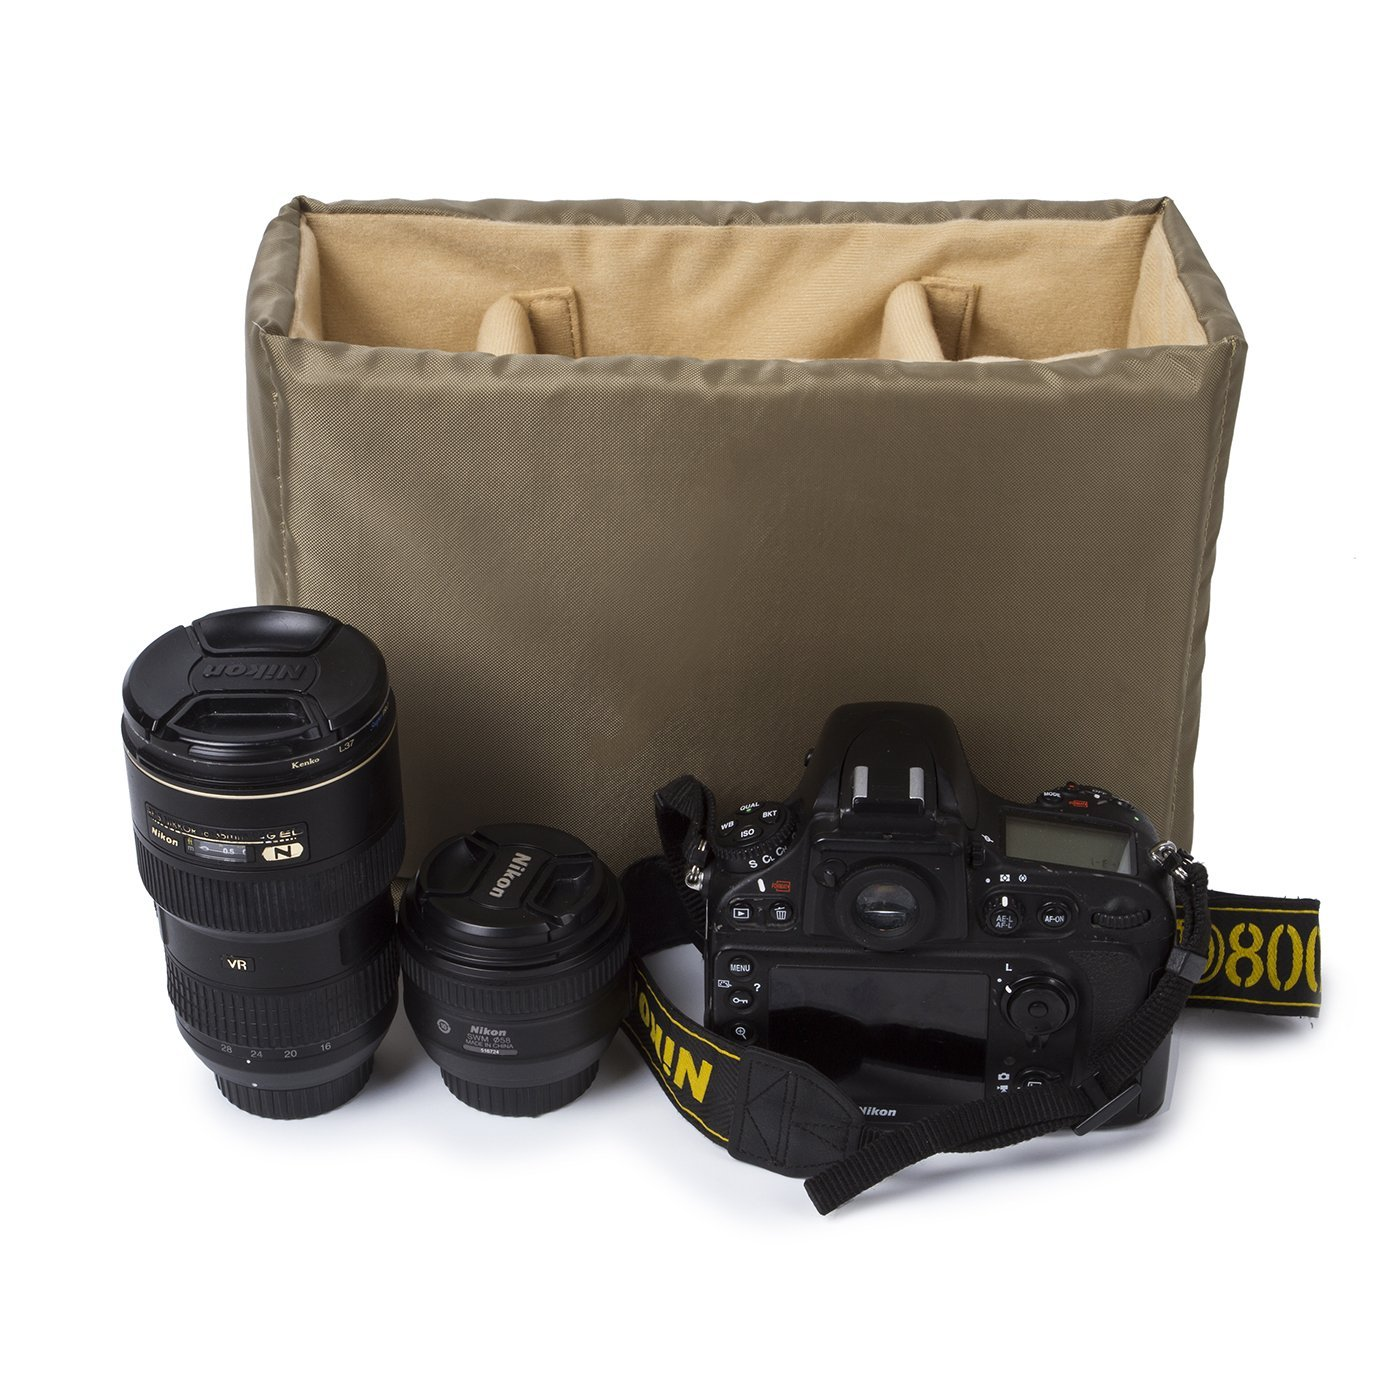 DSLR Camera Insert Camera Case Partition Padded Camera bag, Make Your Own Camera Bag,12.5'' X 8.4'' X4.5''